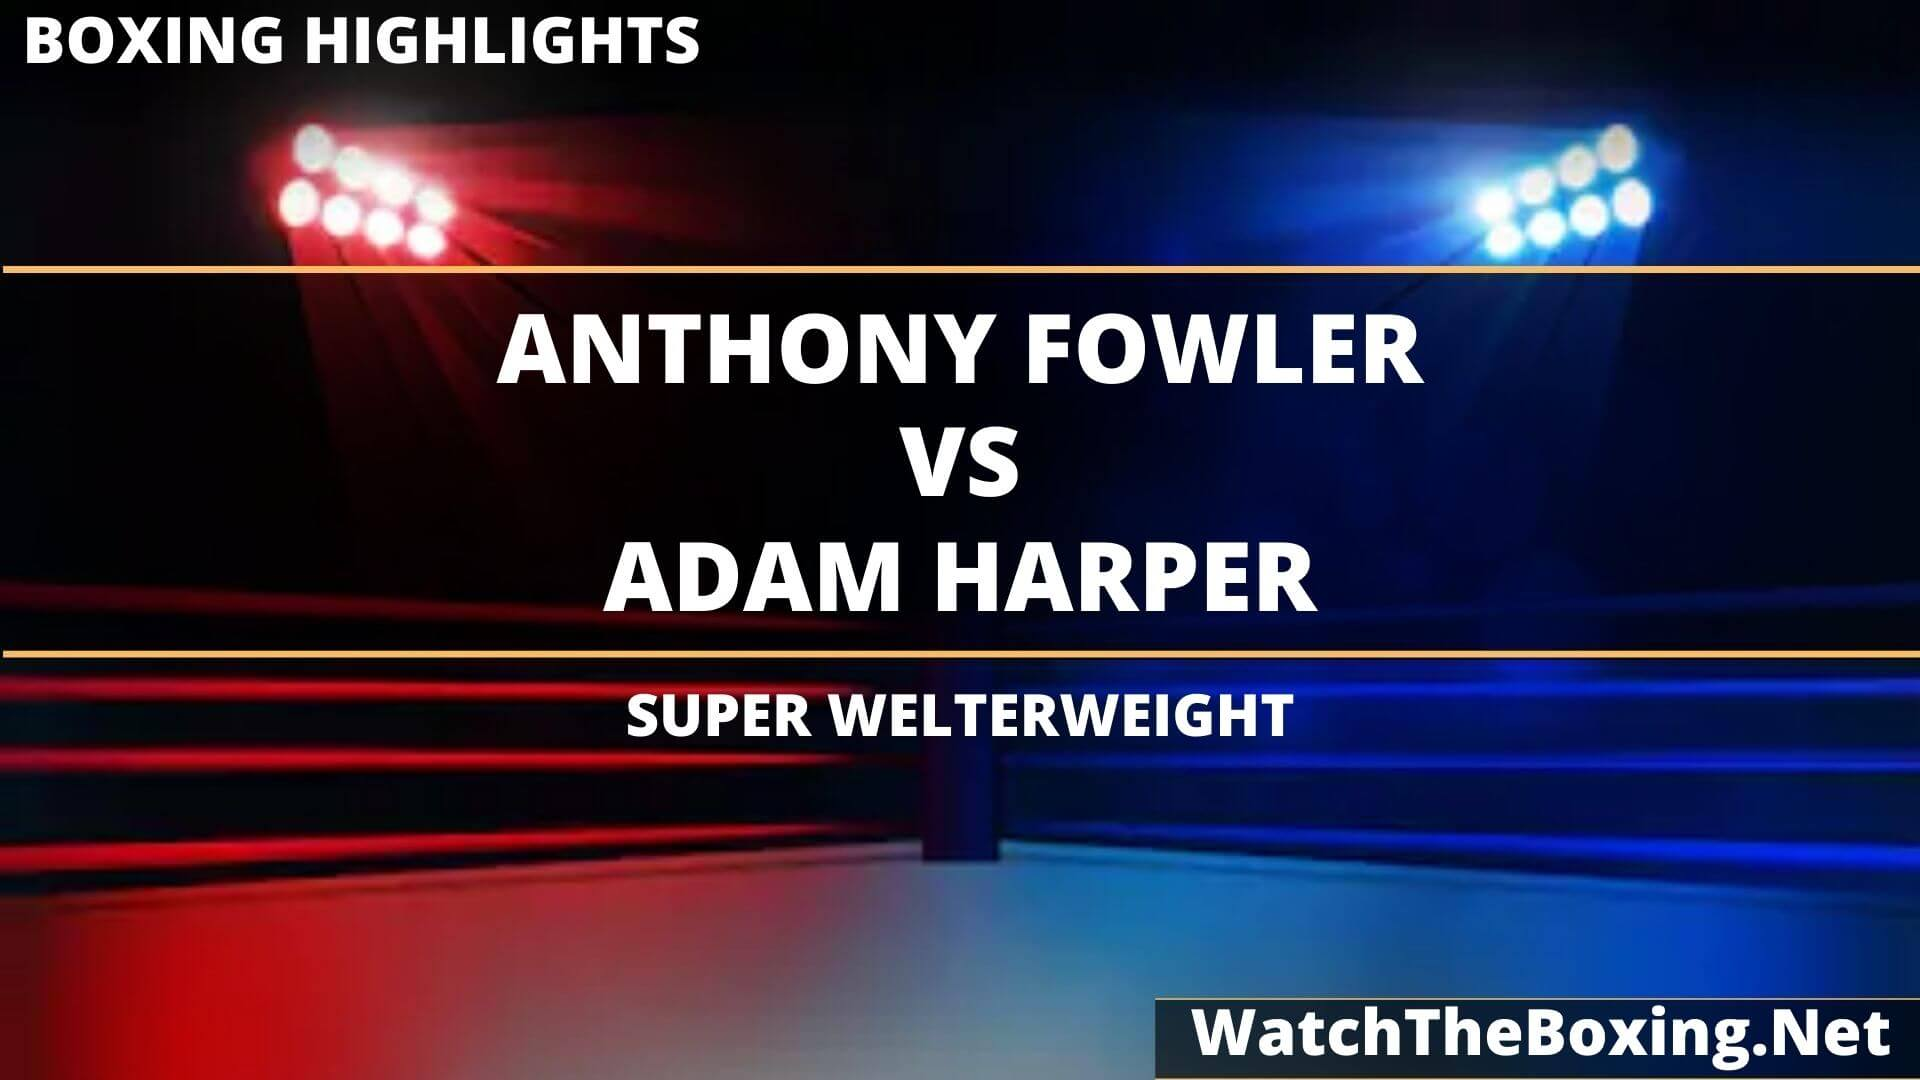 Anthony Fowler Vs Adam Harper Highlights 2020 Super Welterweight